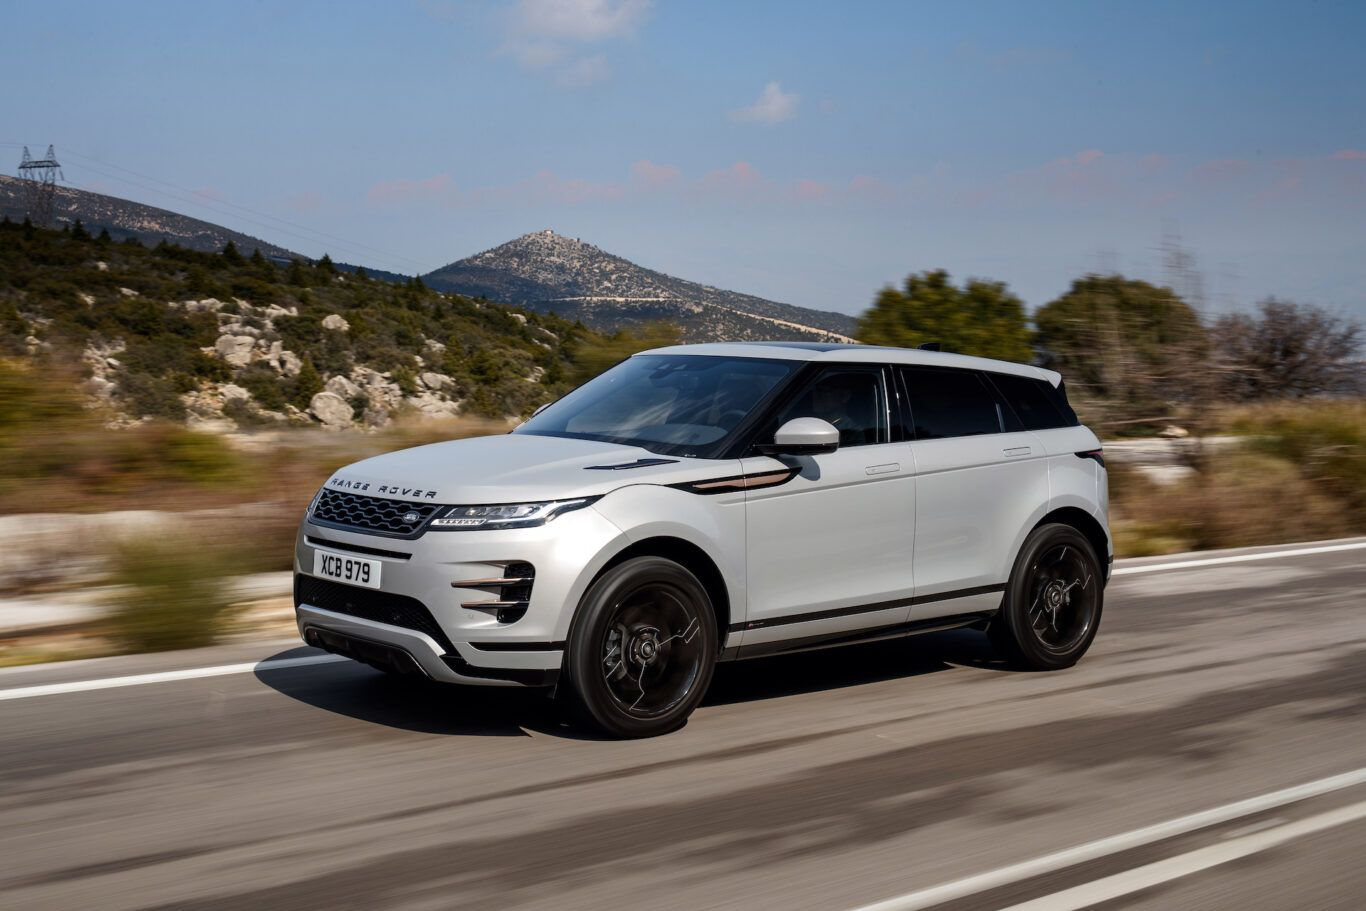 2021 Range Rover Evoque Review Everything You Need To Know